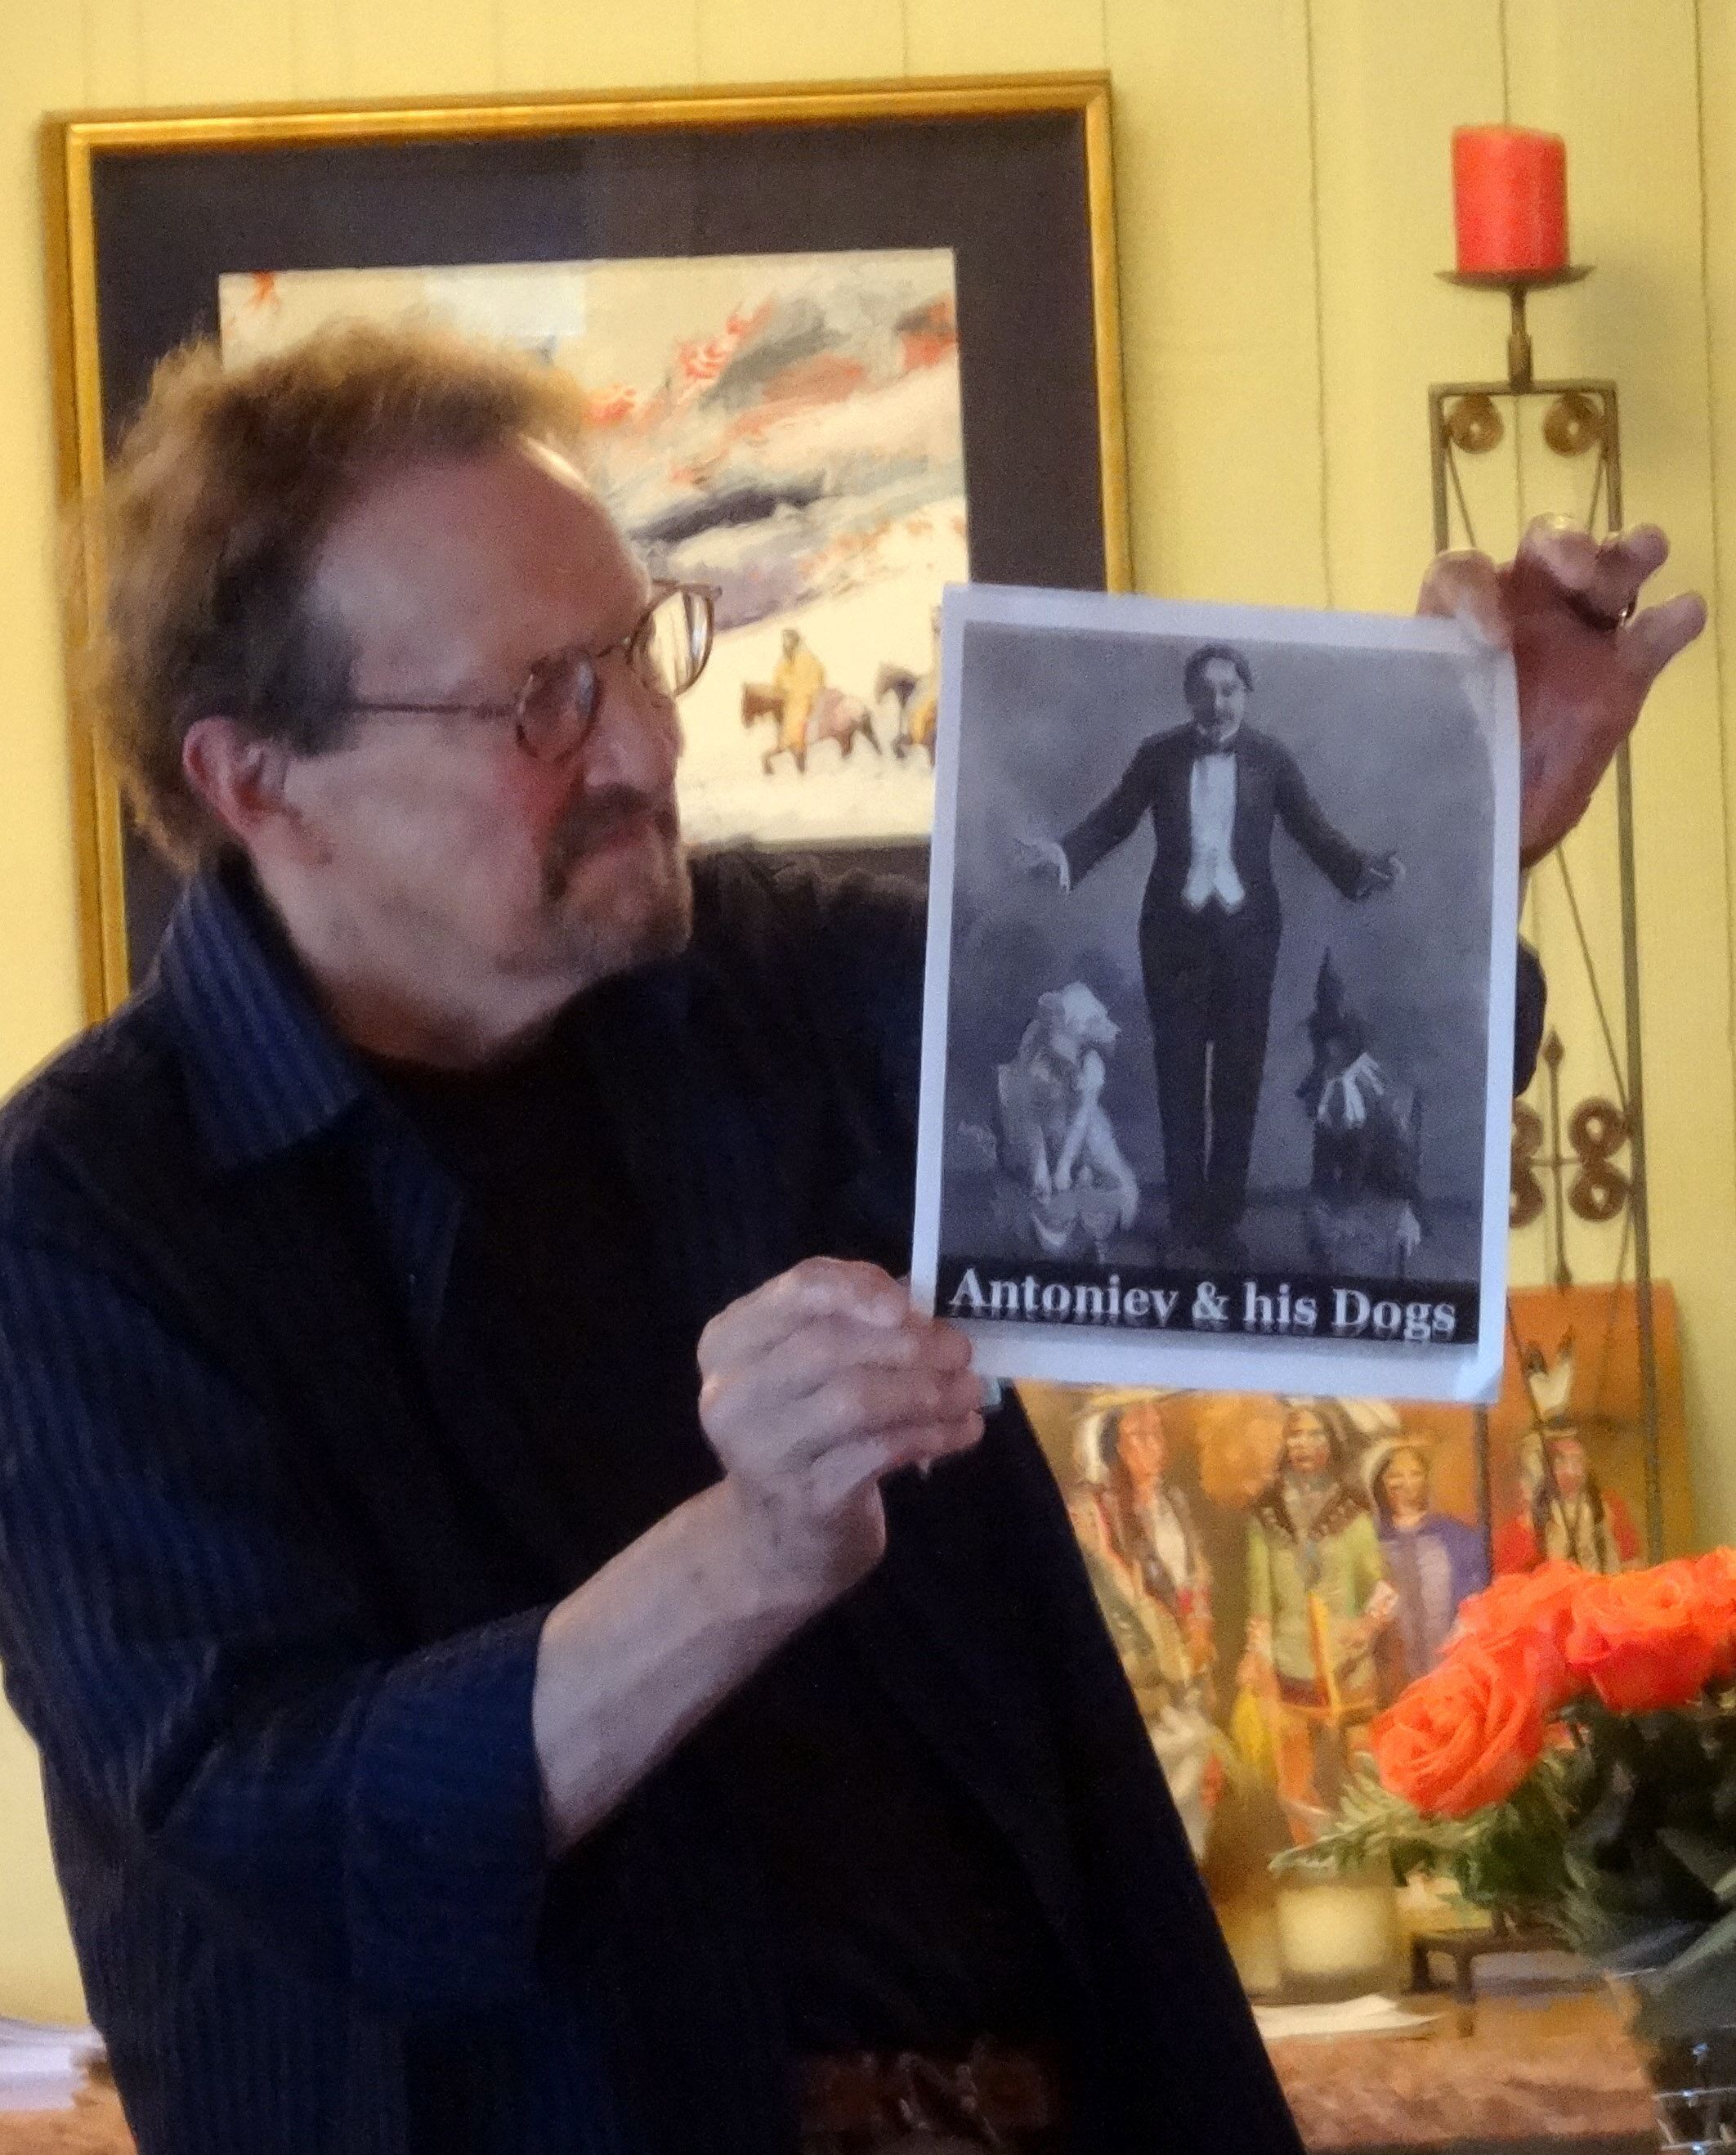 Dennis Collins assisted by showing images of the characters in Colette's 1910 novel  La Vagabonde.